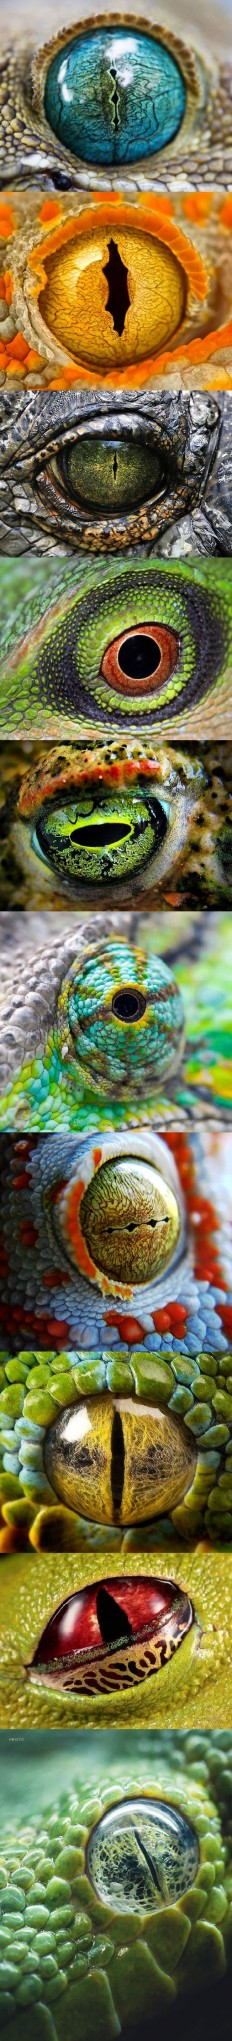 animal eyes | Nature and Patterns | Pinterest